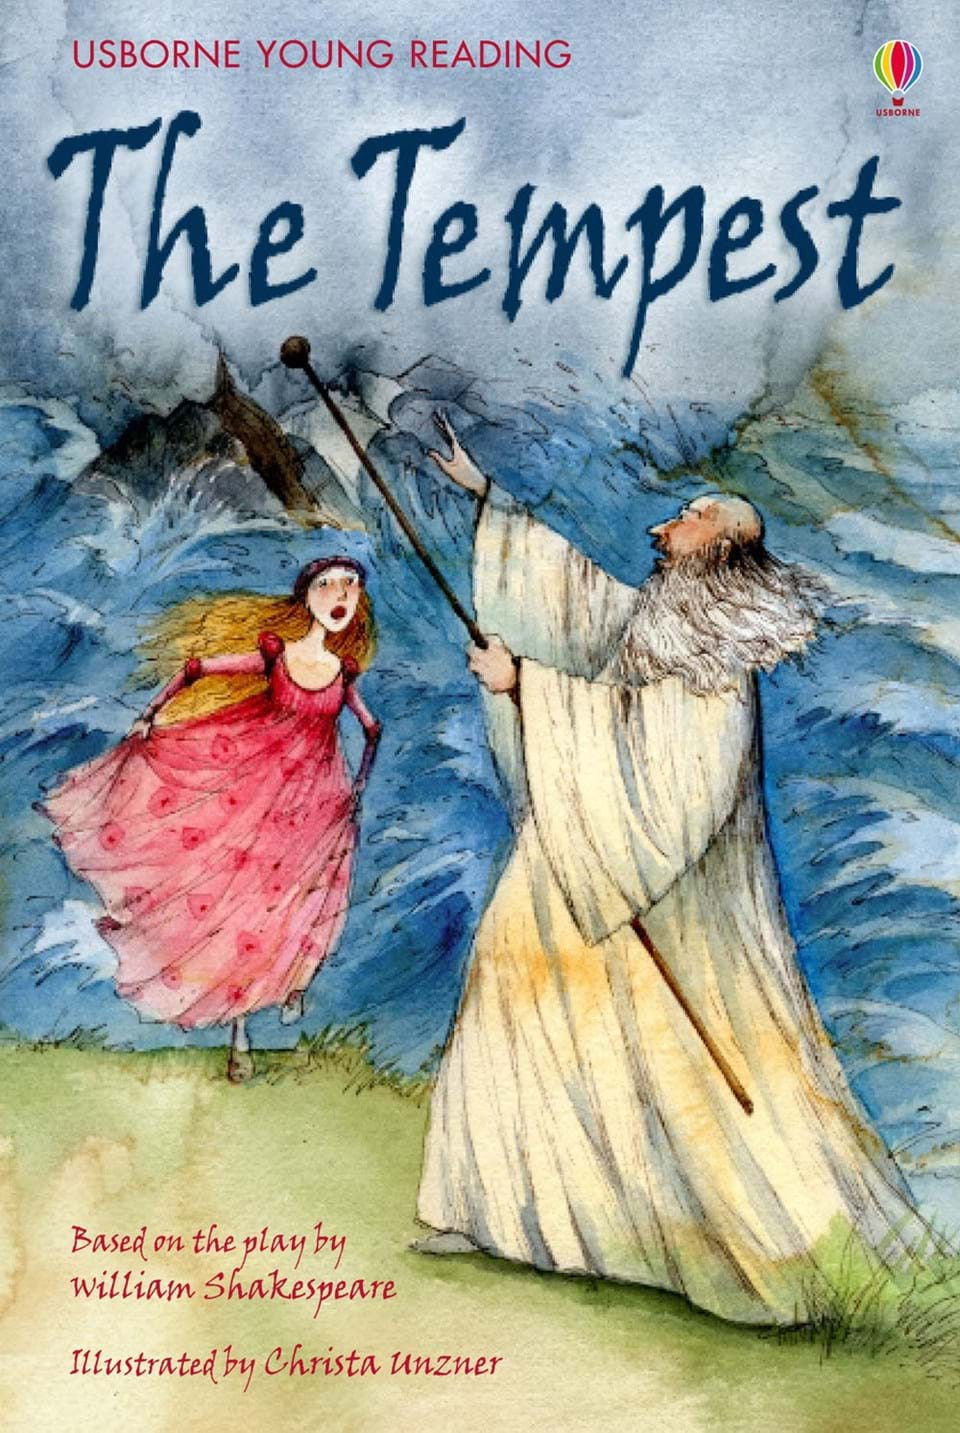 The tempest book free download